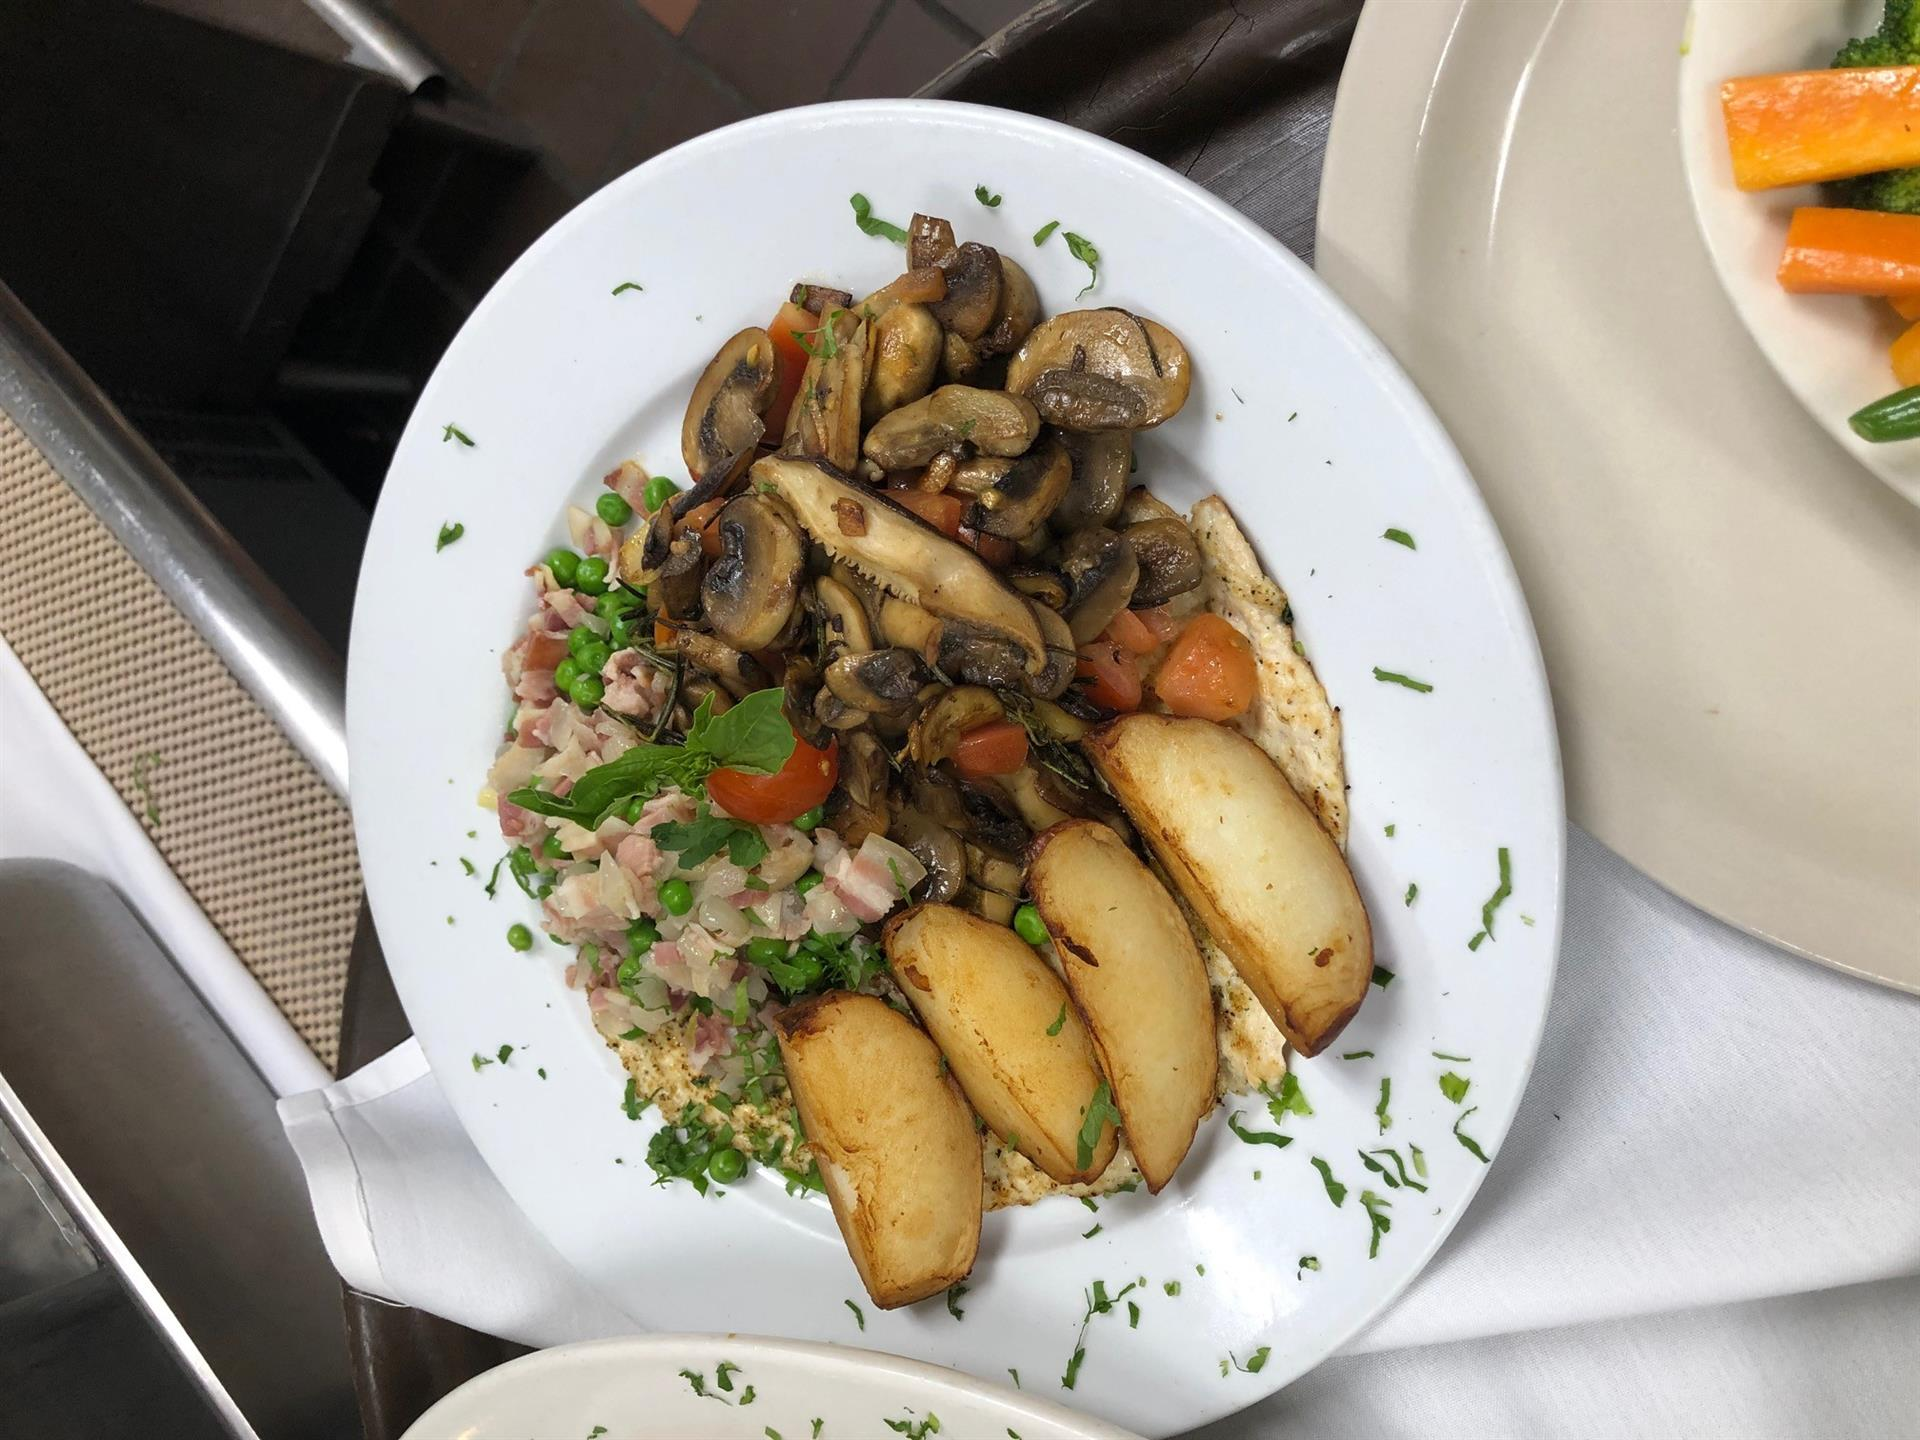 cooked chicken topped with mushrooms and a side of potatoes